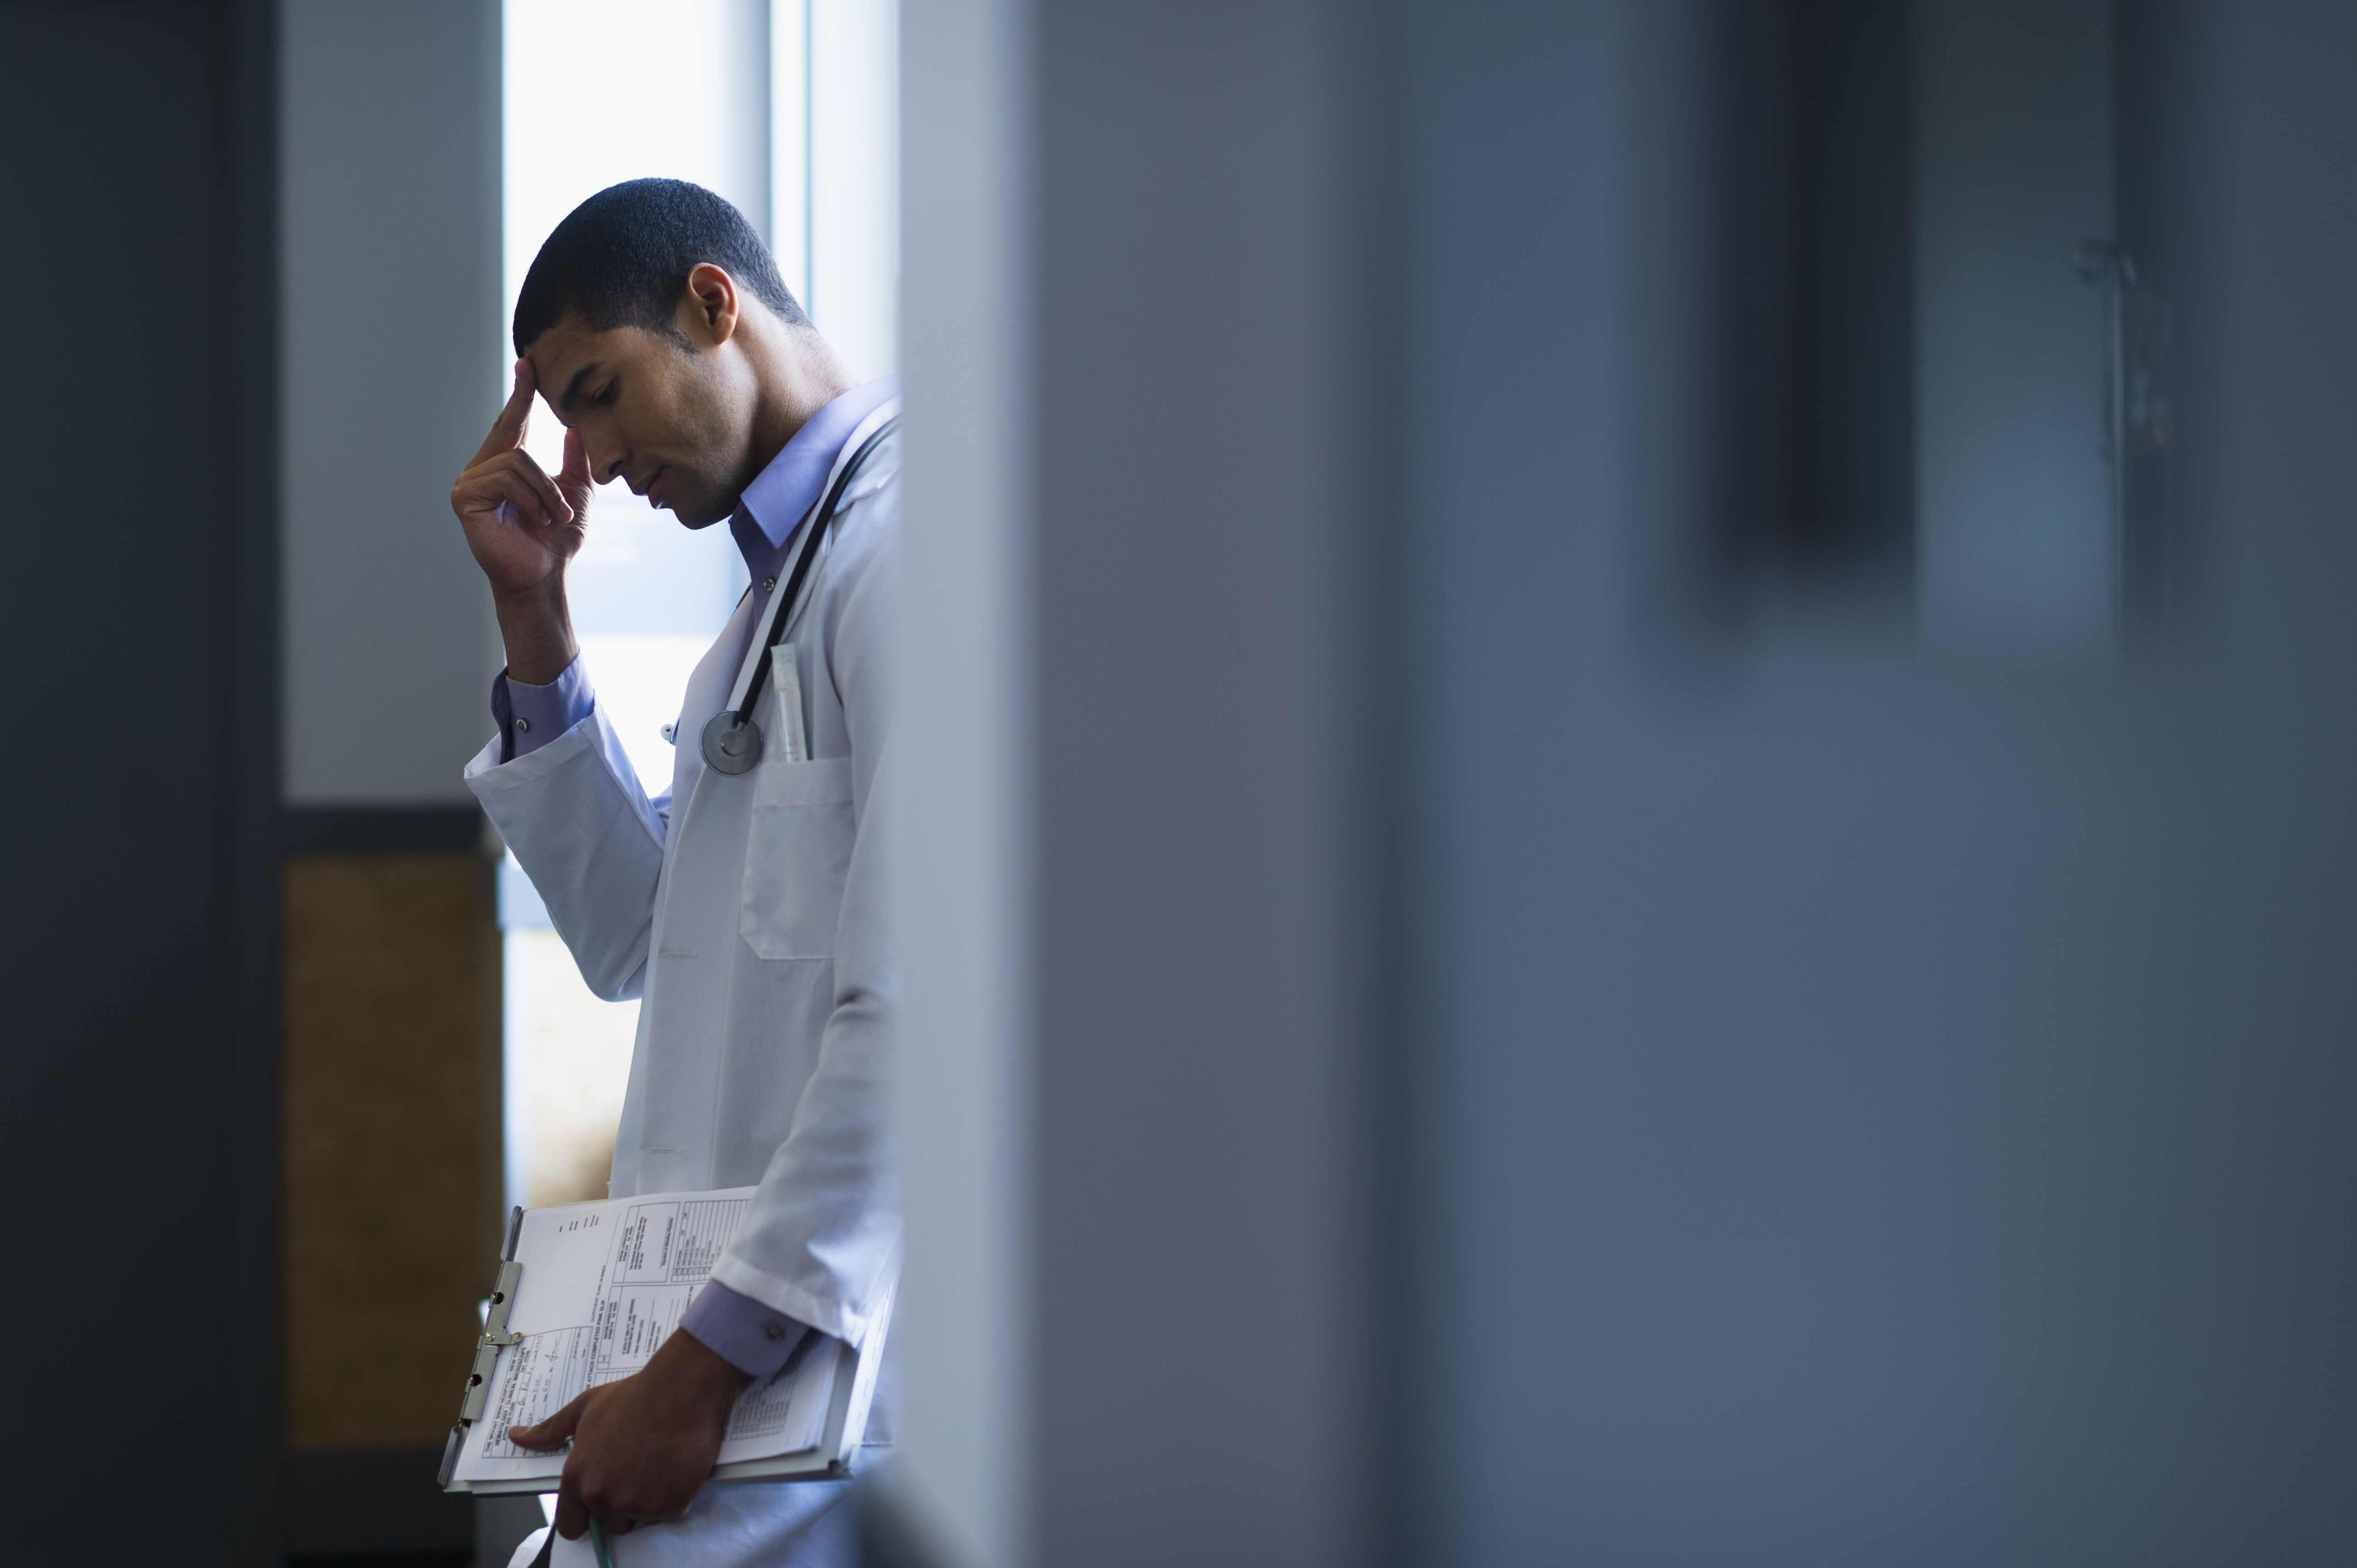 A male doctor looks down in frustration.